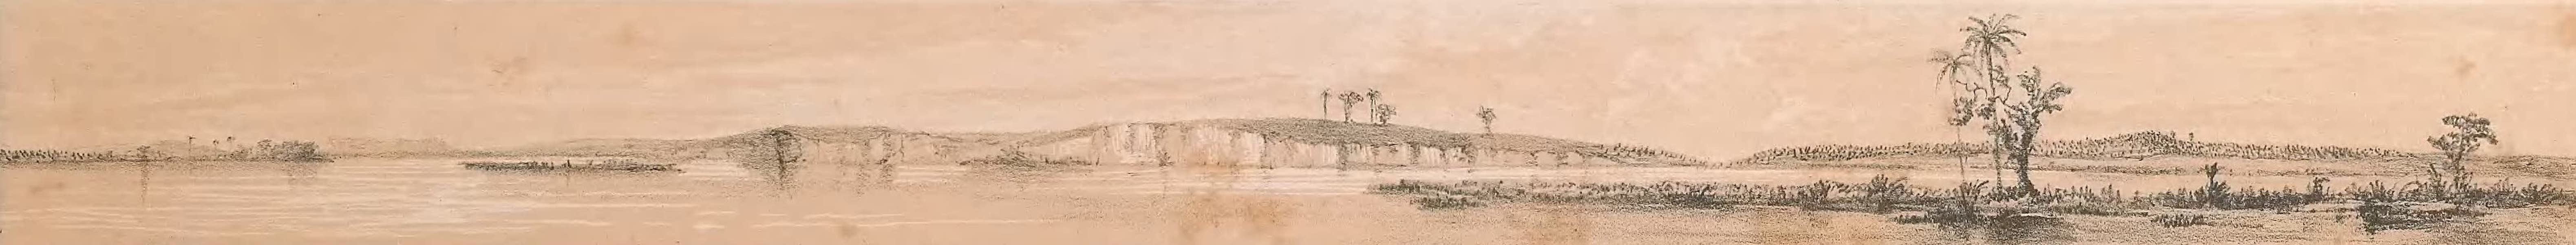 Picturesque Views on the River Niger - Zagoshi Looking Up the River, the City of Rabba (1840)